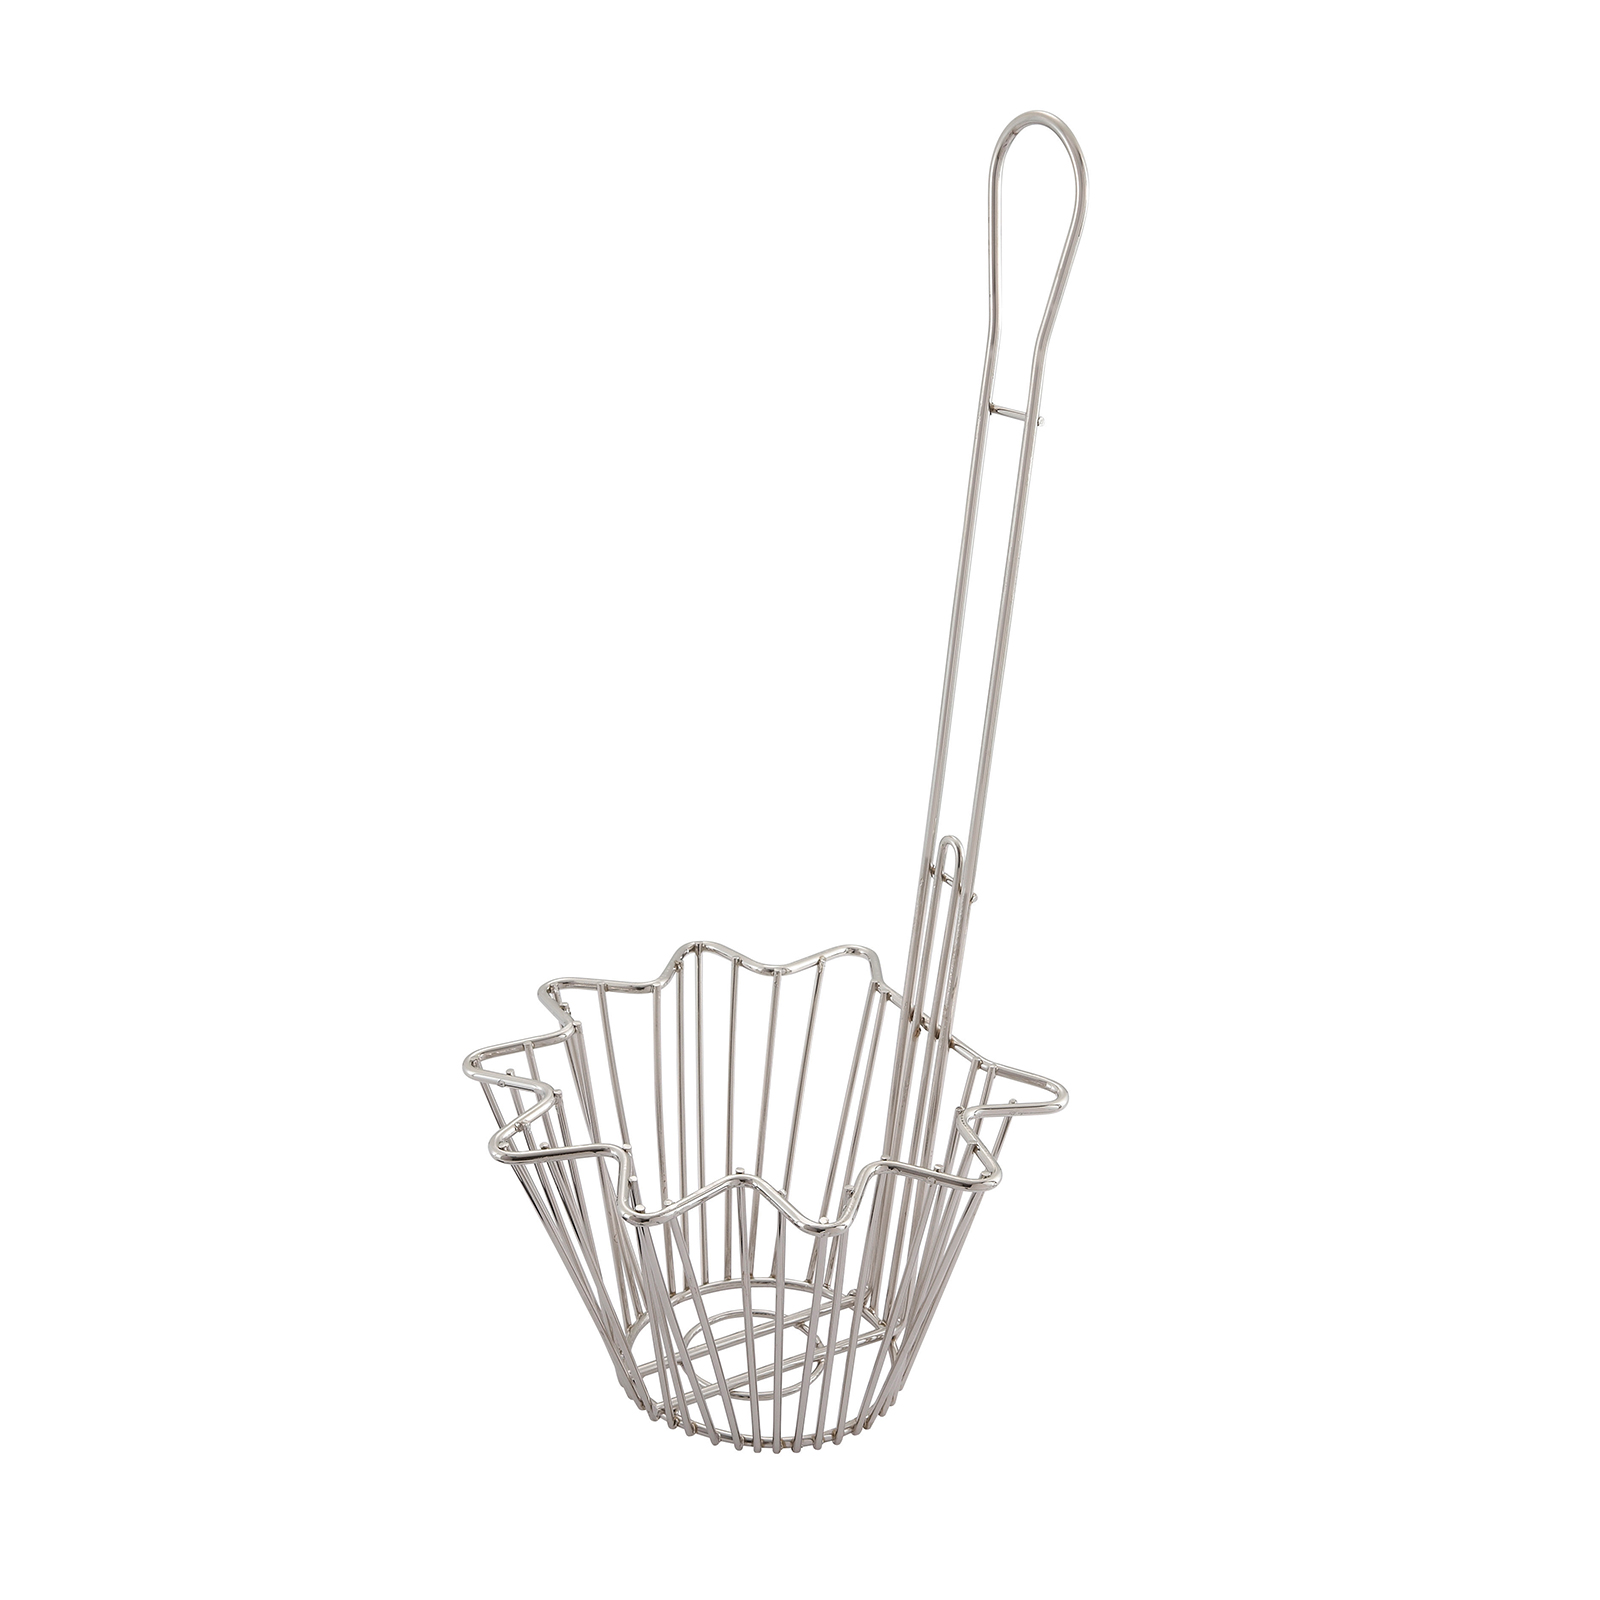 Winco TB-20 fryer basket